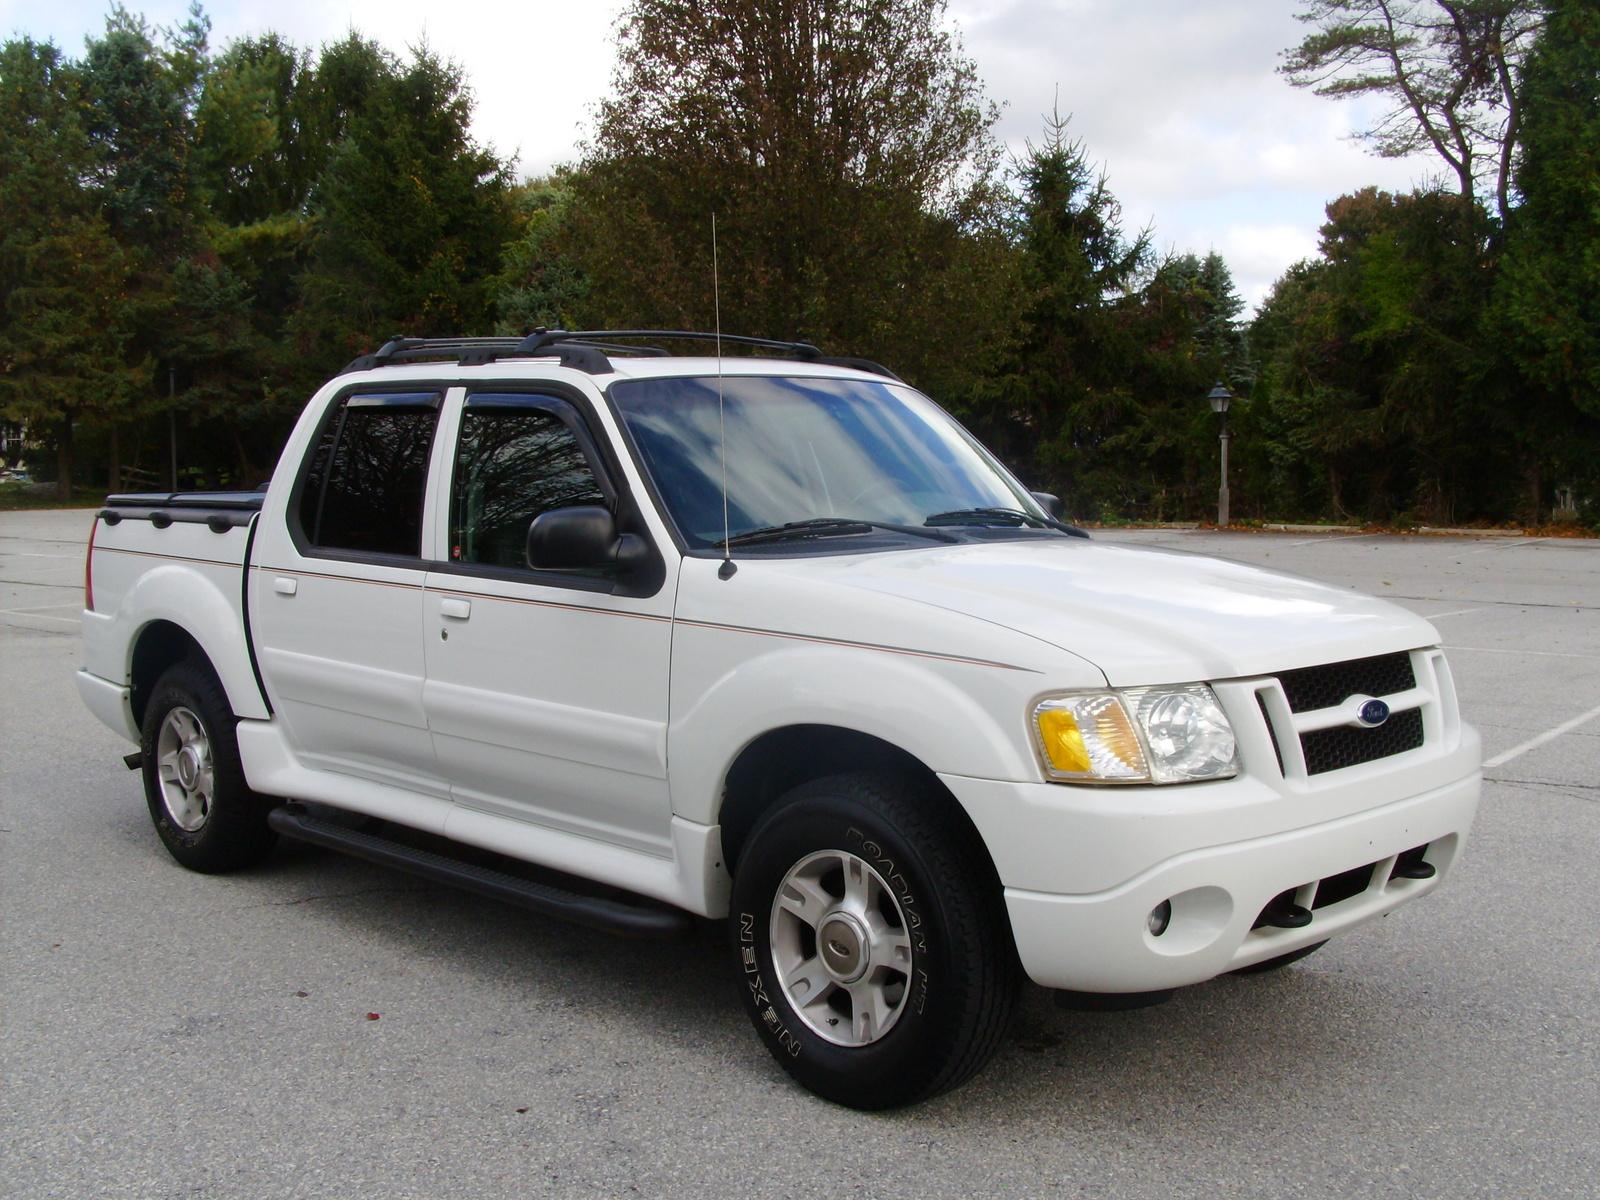 2004 Ford Explorer Sport Trac - Overview